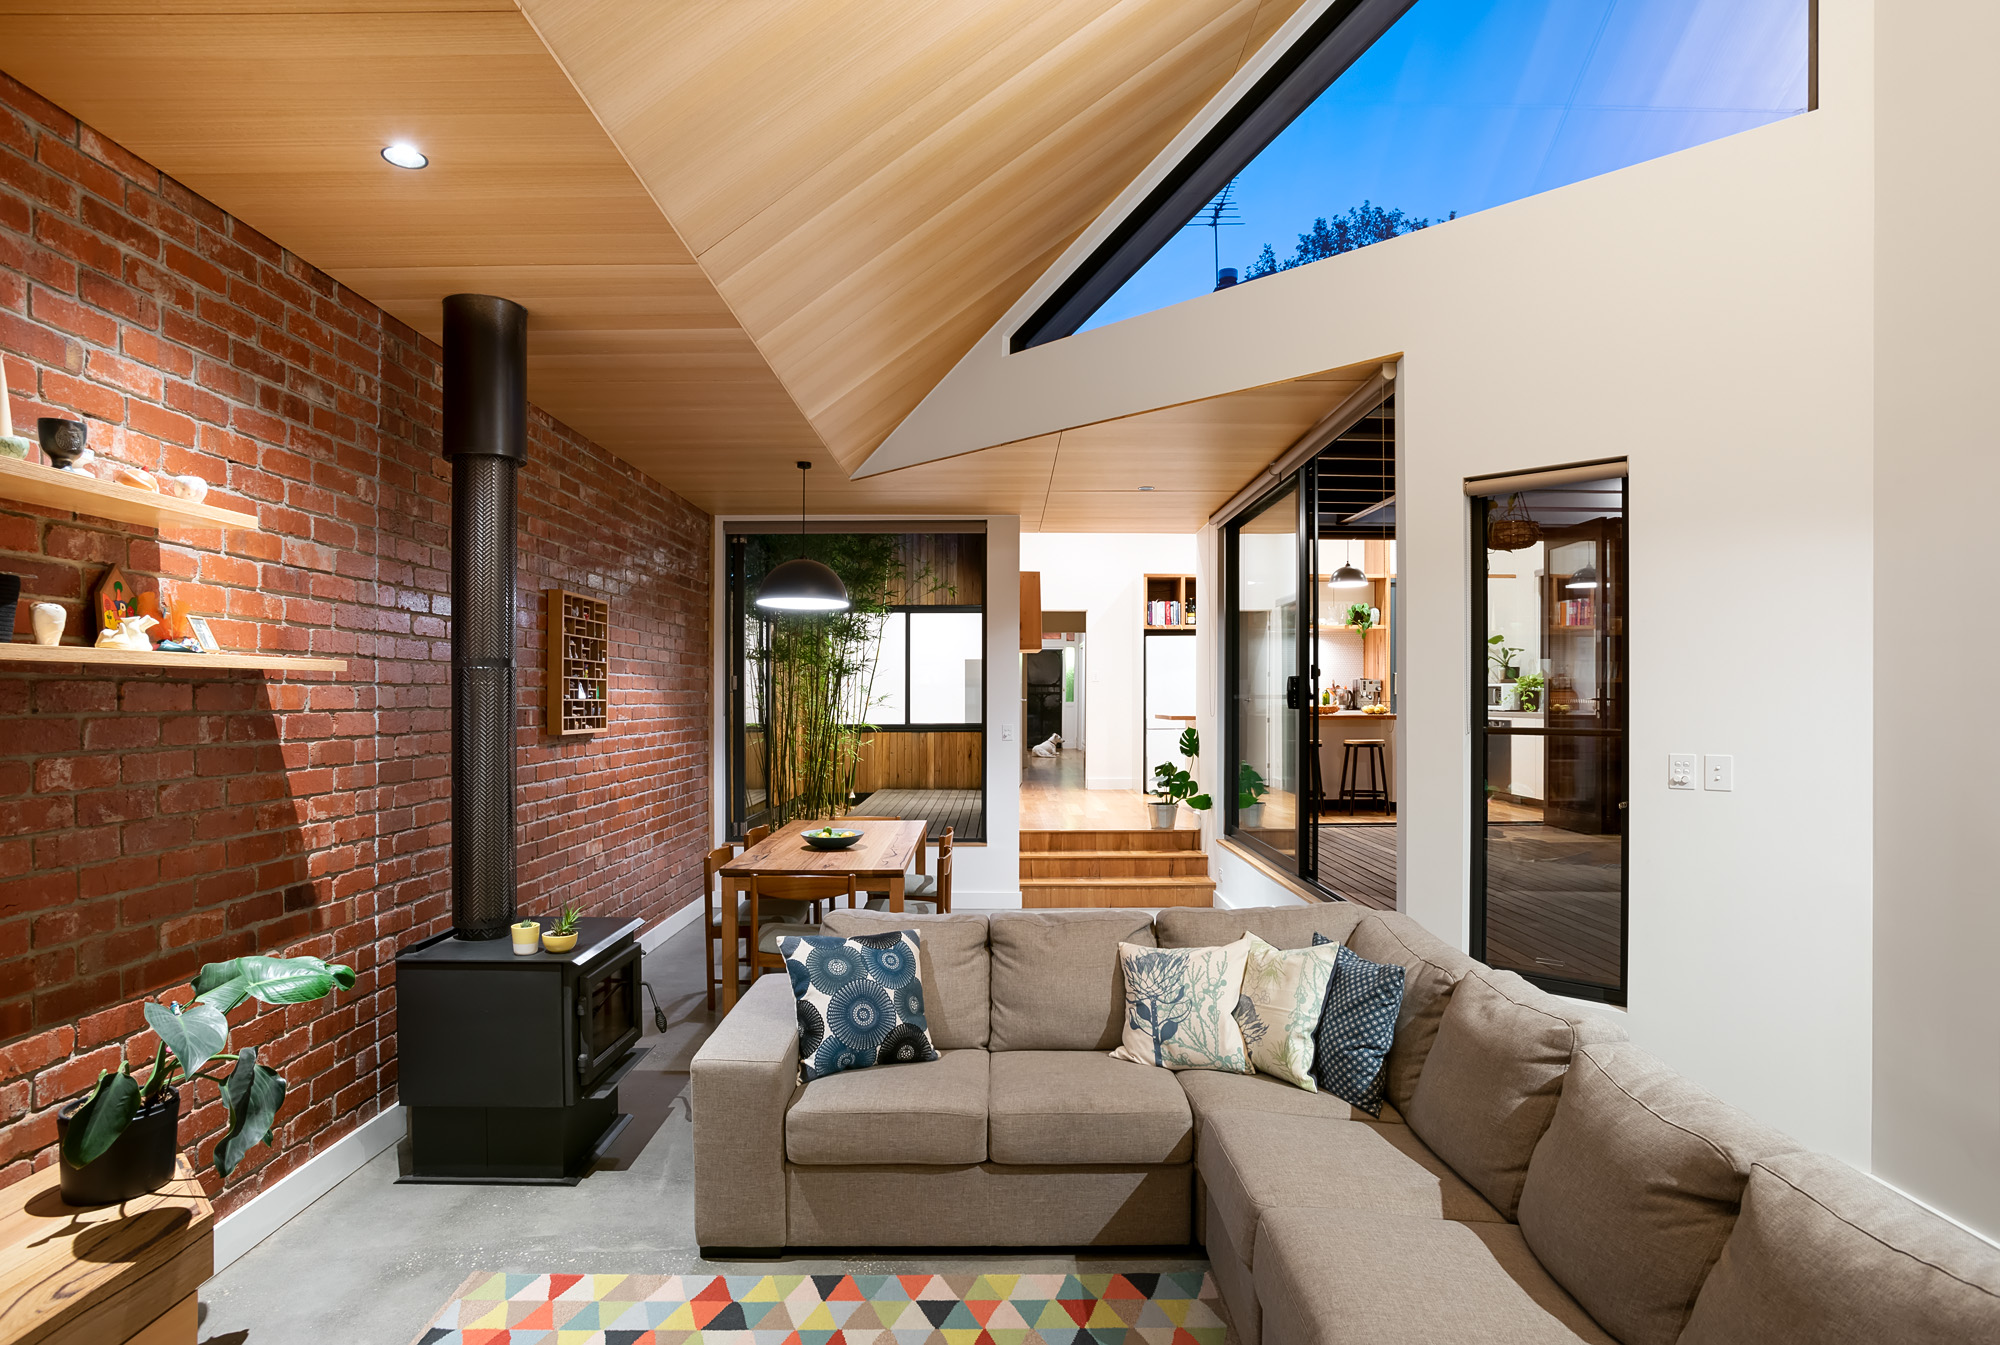 green sheep collective sustainable architect melbourne triangular clerestory windows plywood ceiling.jpg